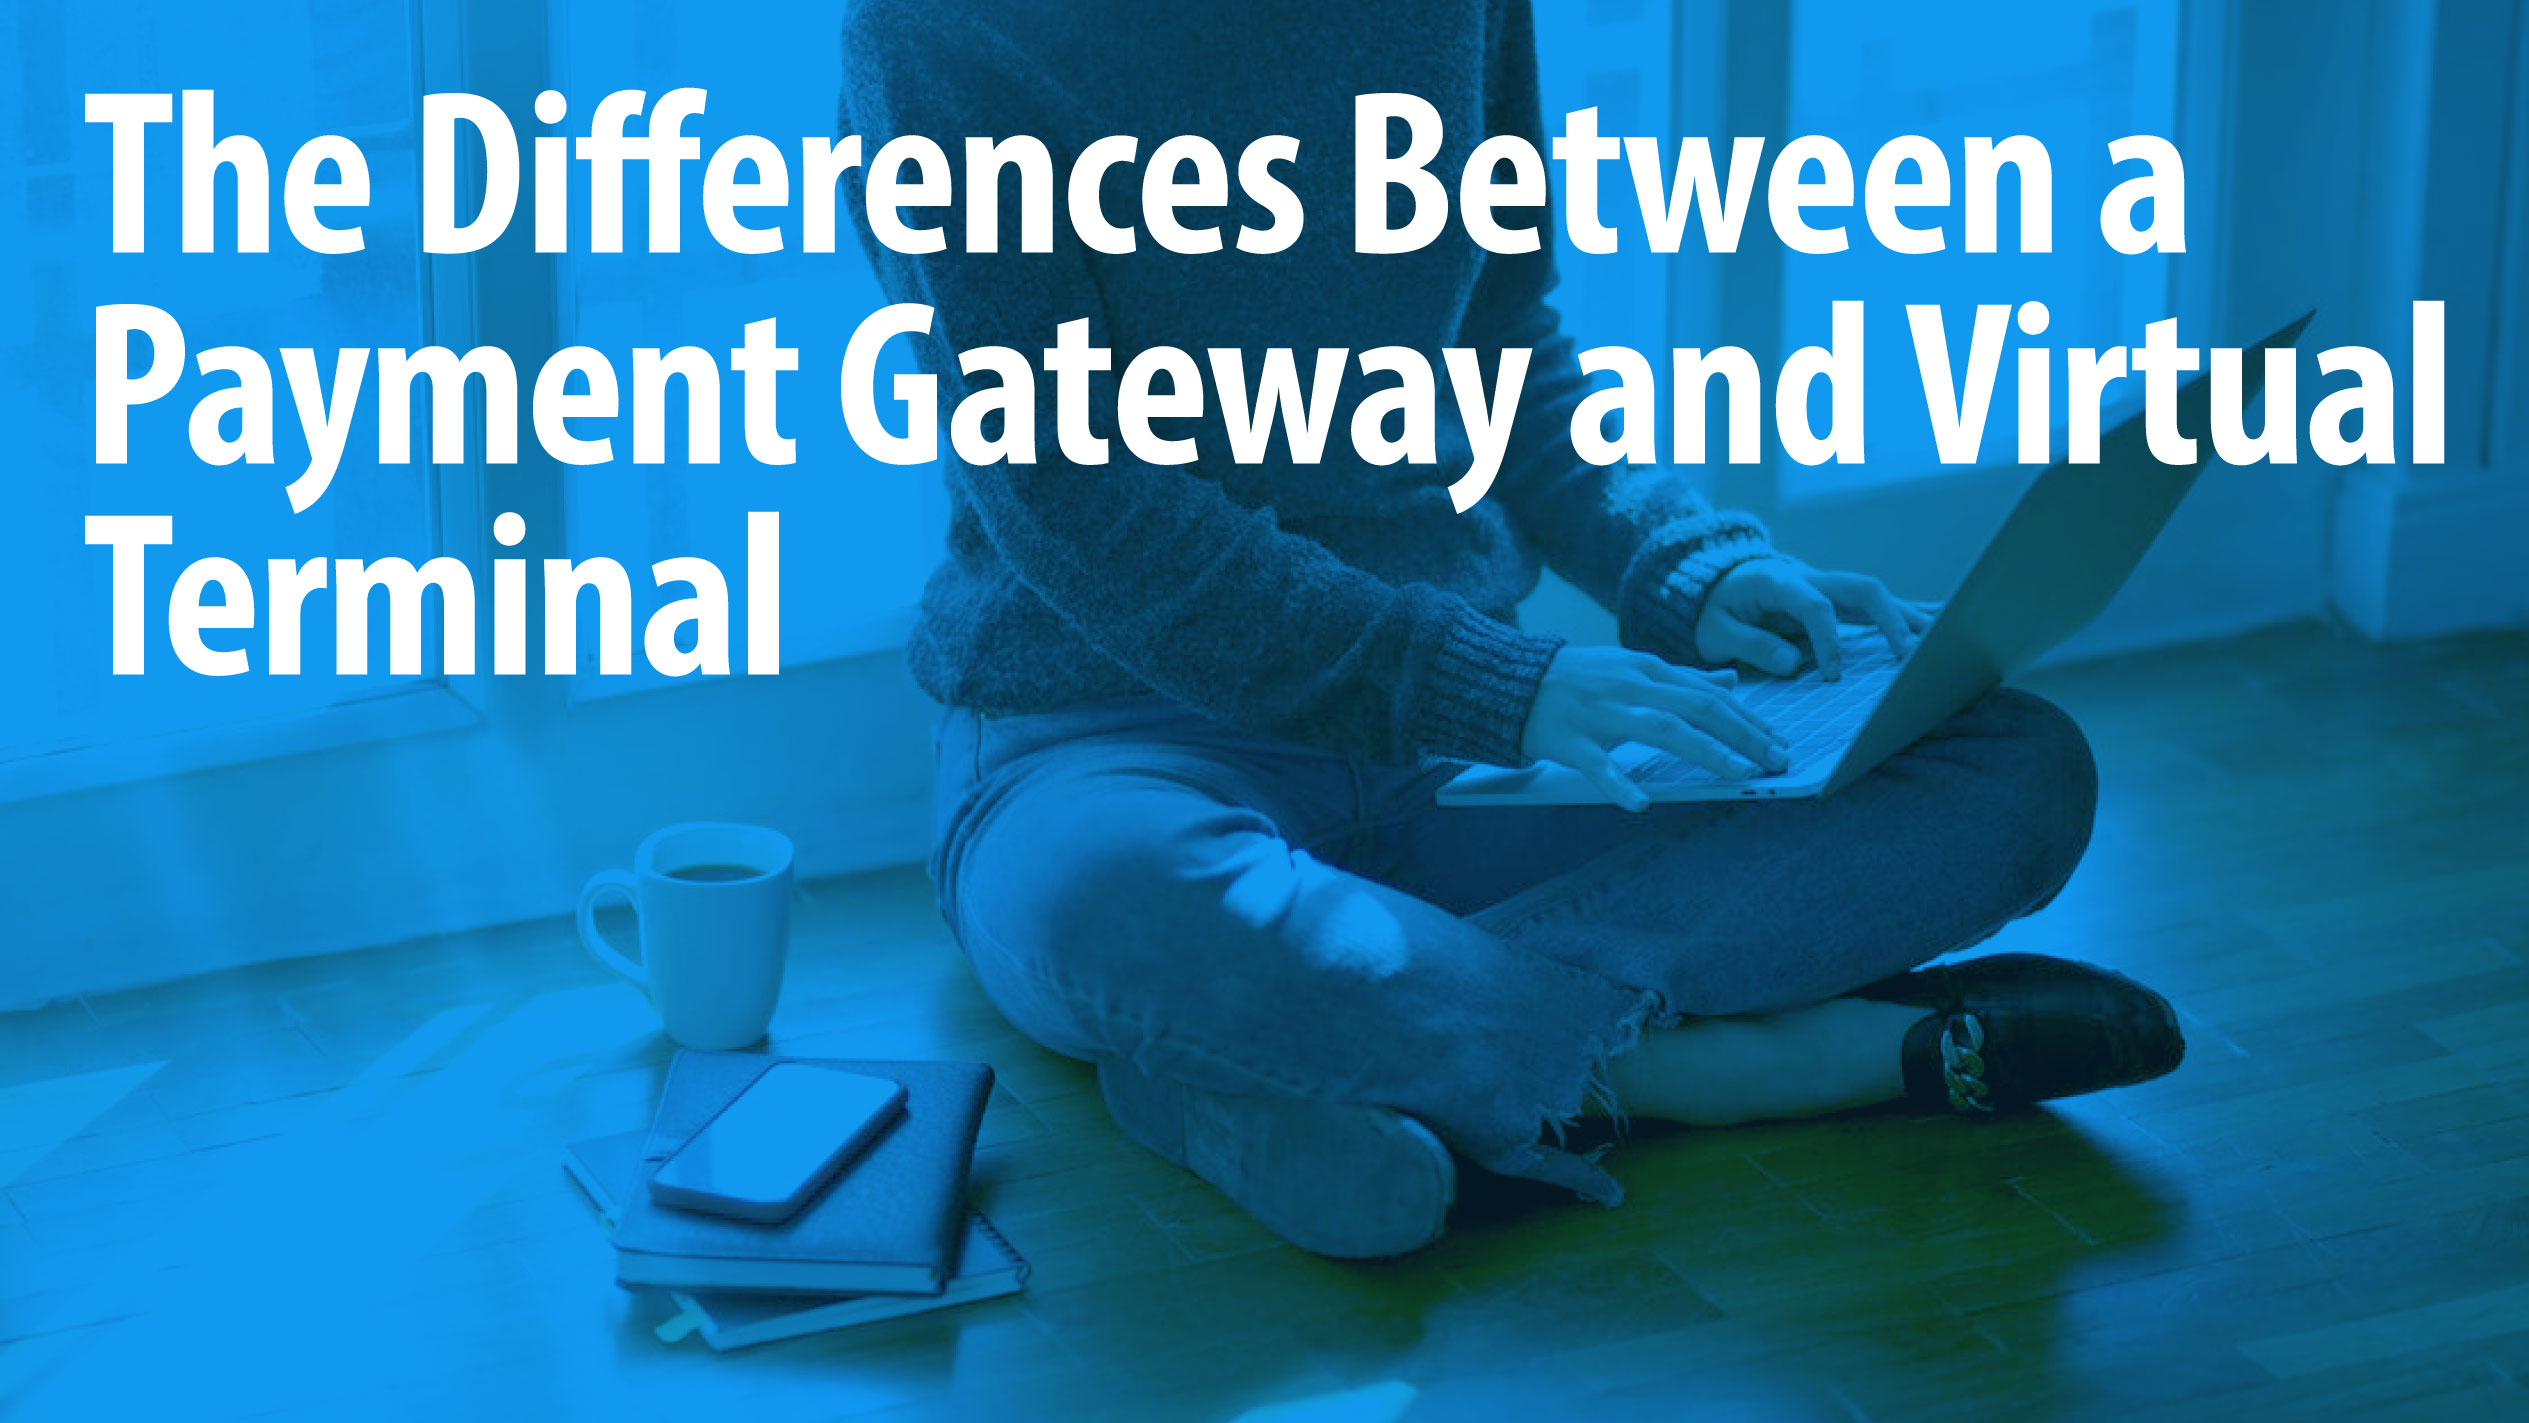 The Differences Between a Payment Gateway and Virtual Terminal